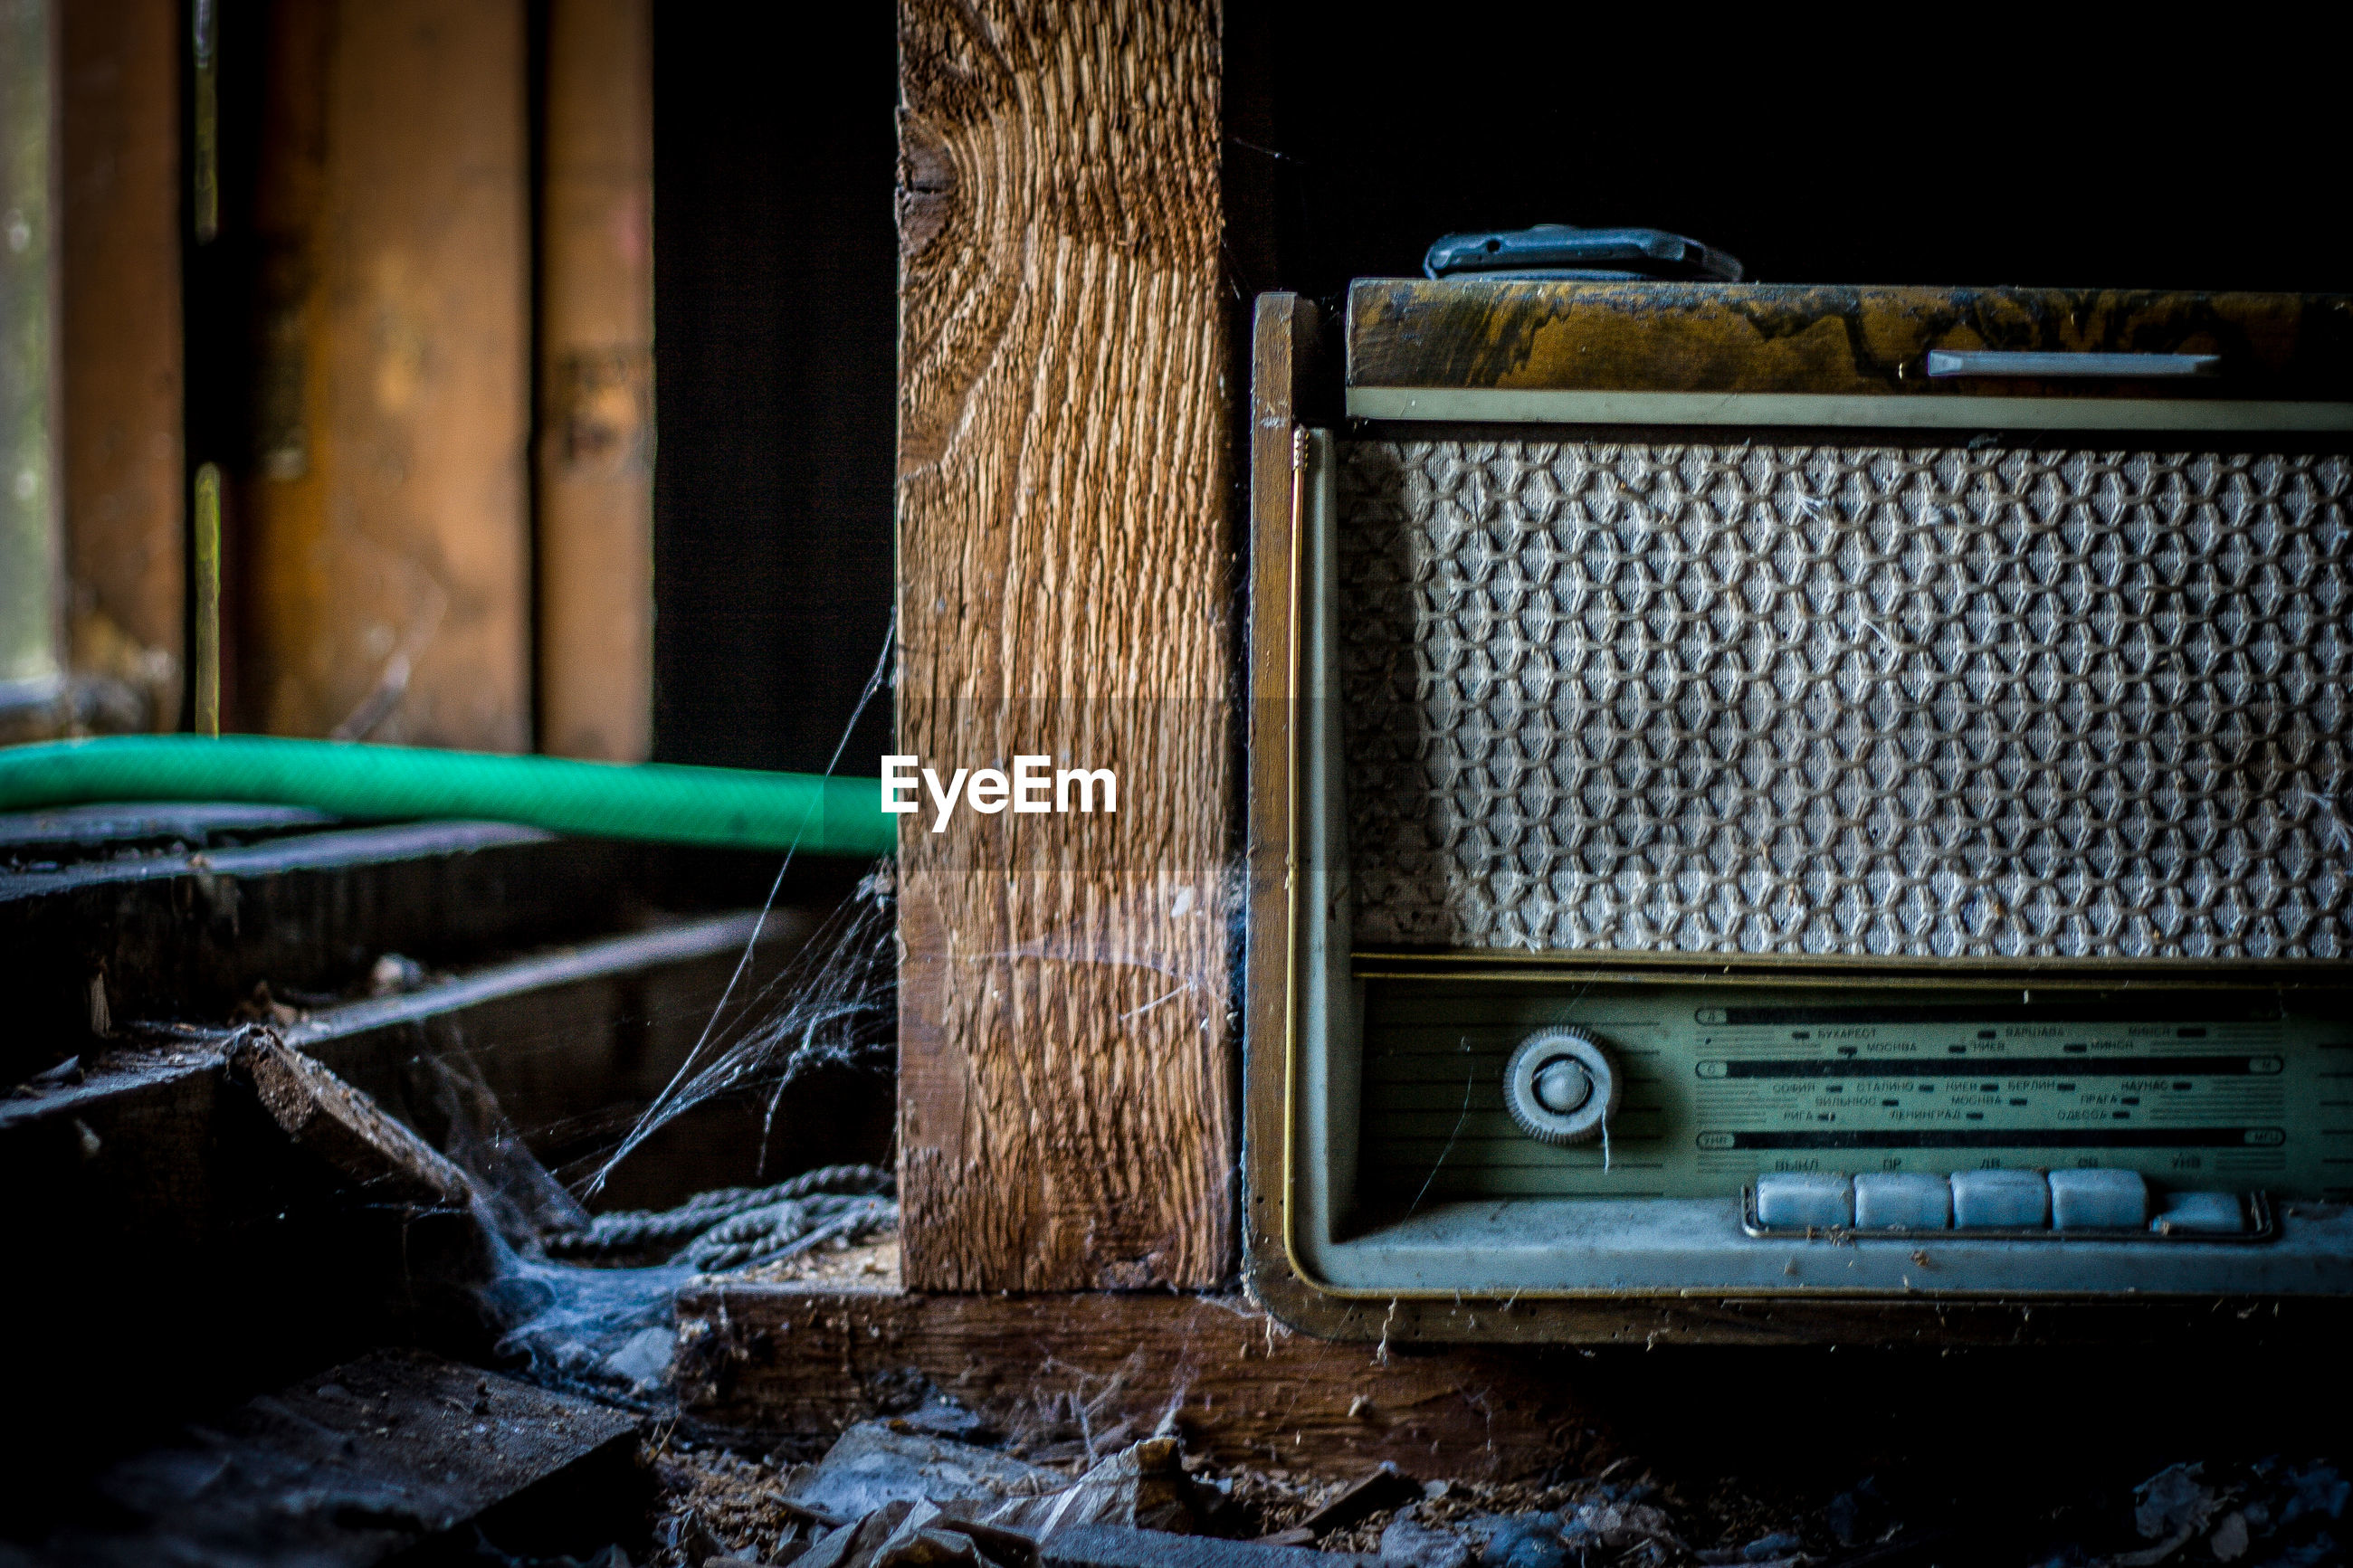 Close-up of old radio in abandoned shelf